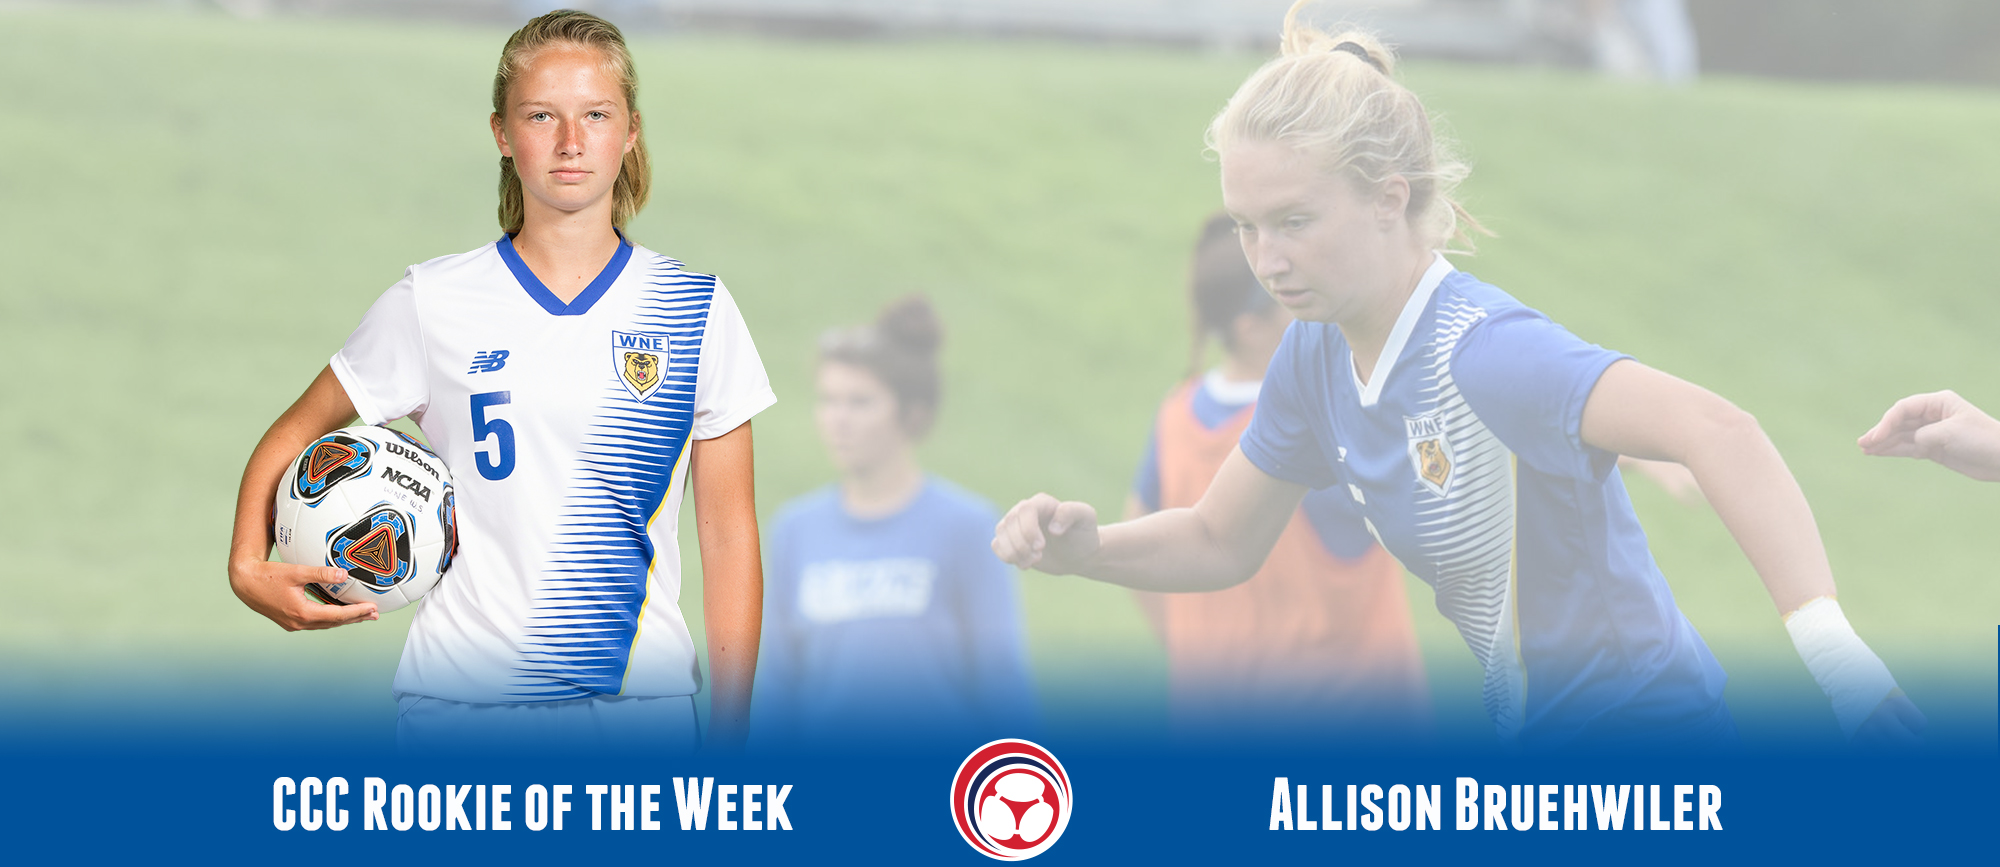 Allison Bruehwiler Collects CCC Rookie of the Week Honors